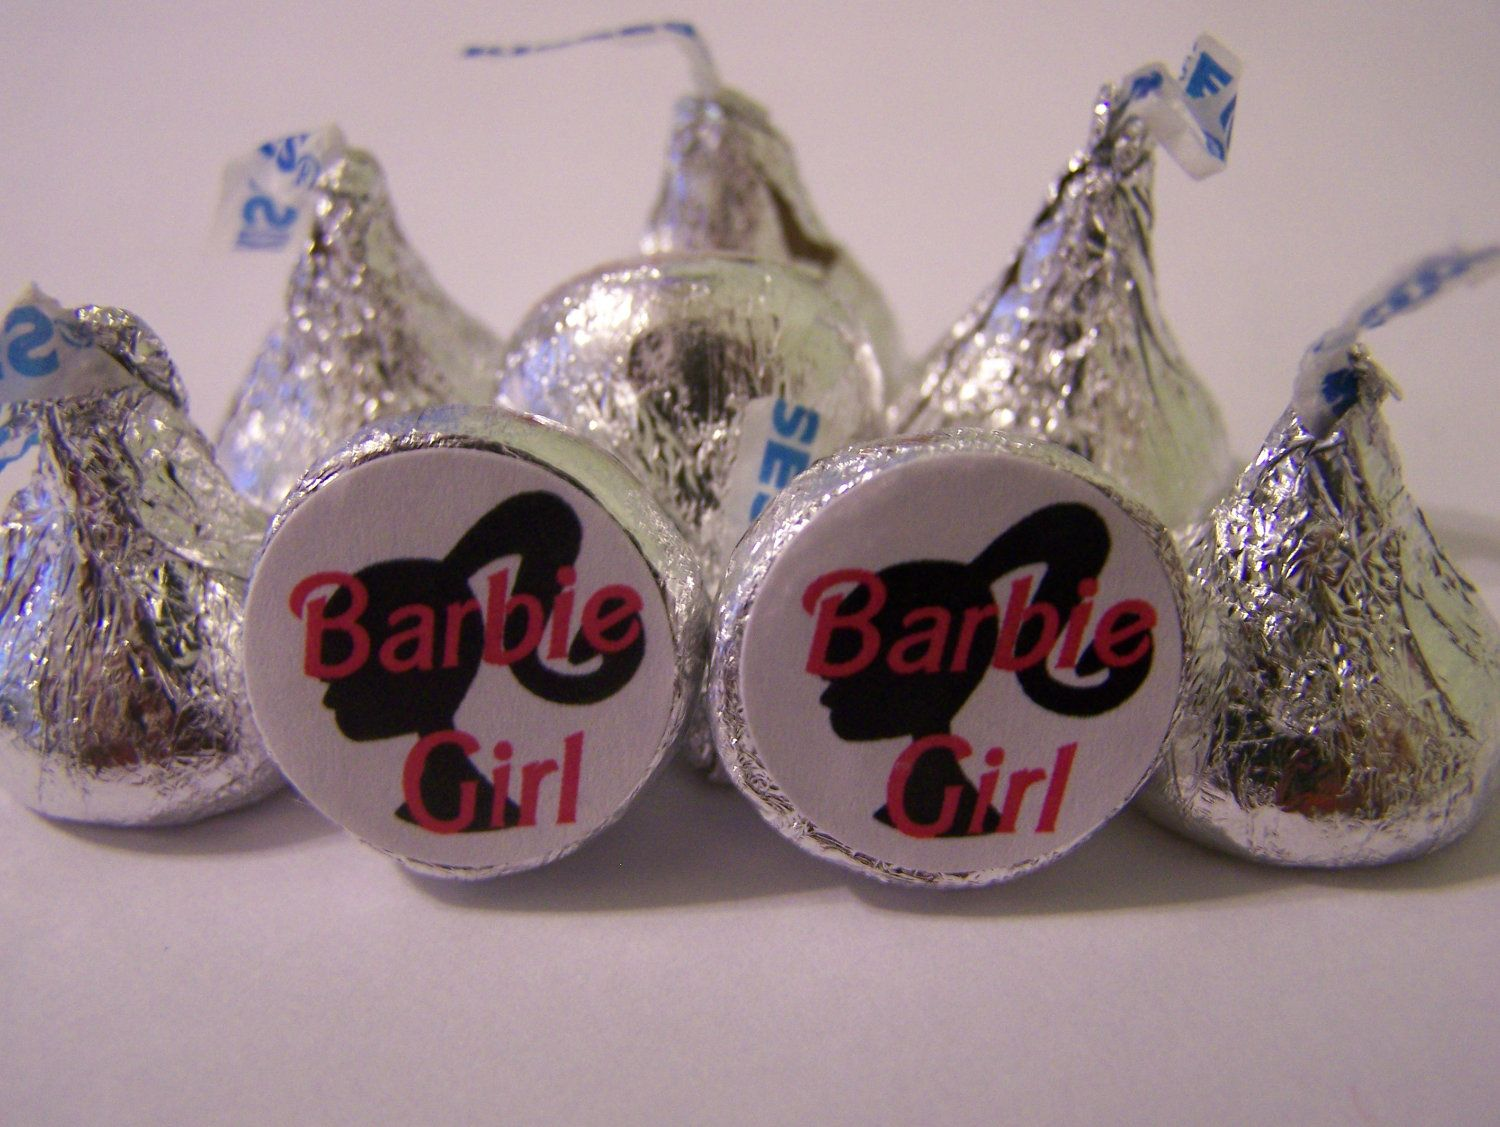 BARBIE GIRL - Hershey Kisses - 108 self-advesive stickers - Labels Only - Personalized favors Personalized party favors. $7.99, via Etsy.